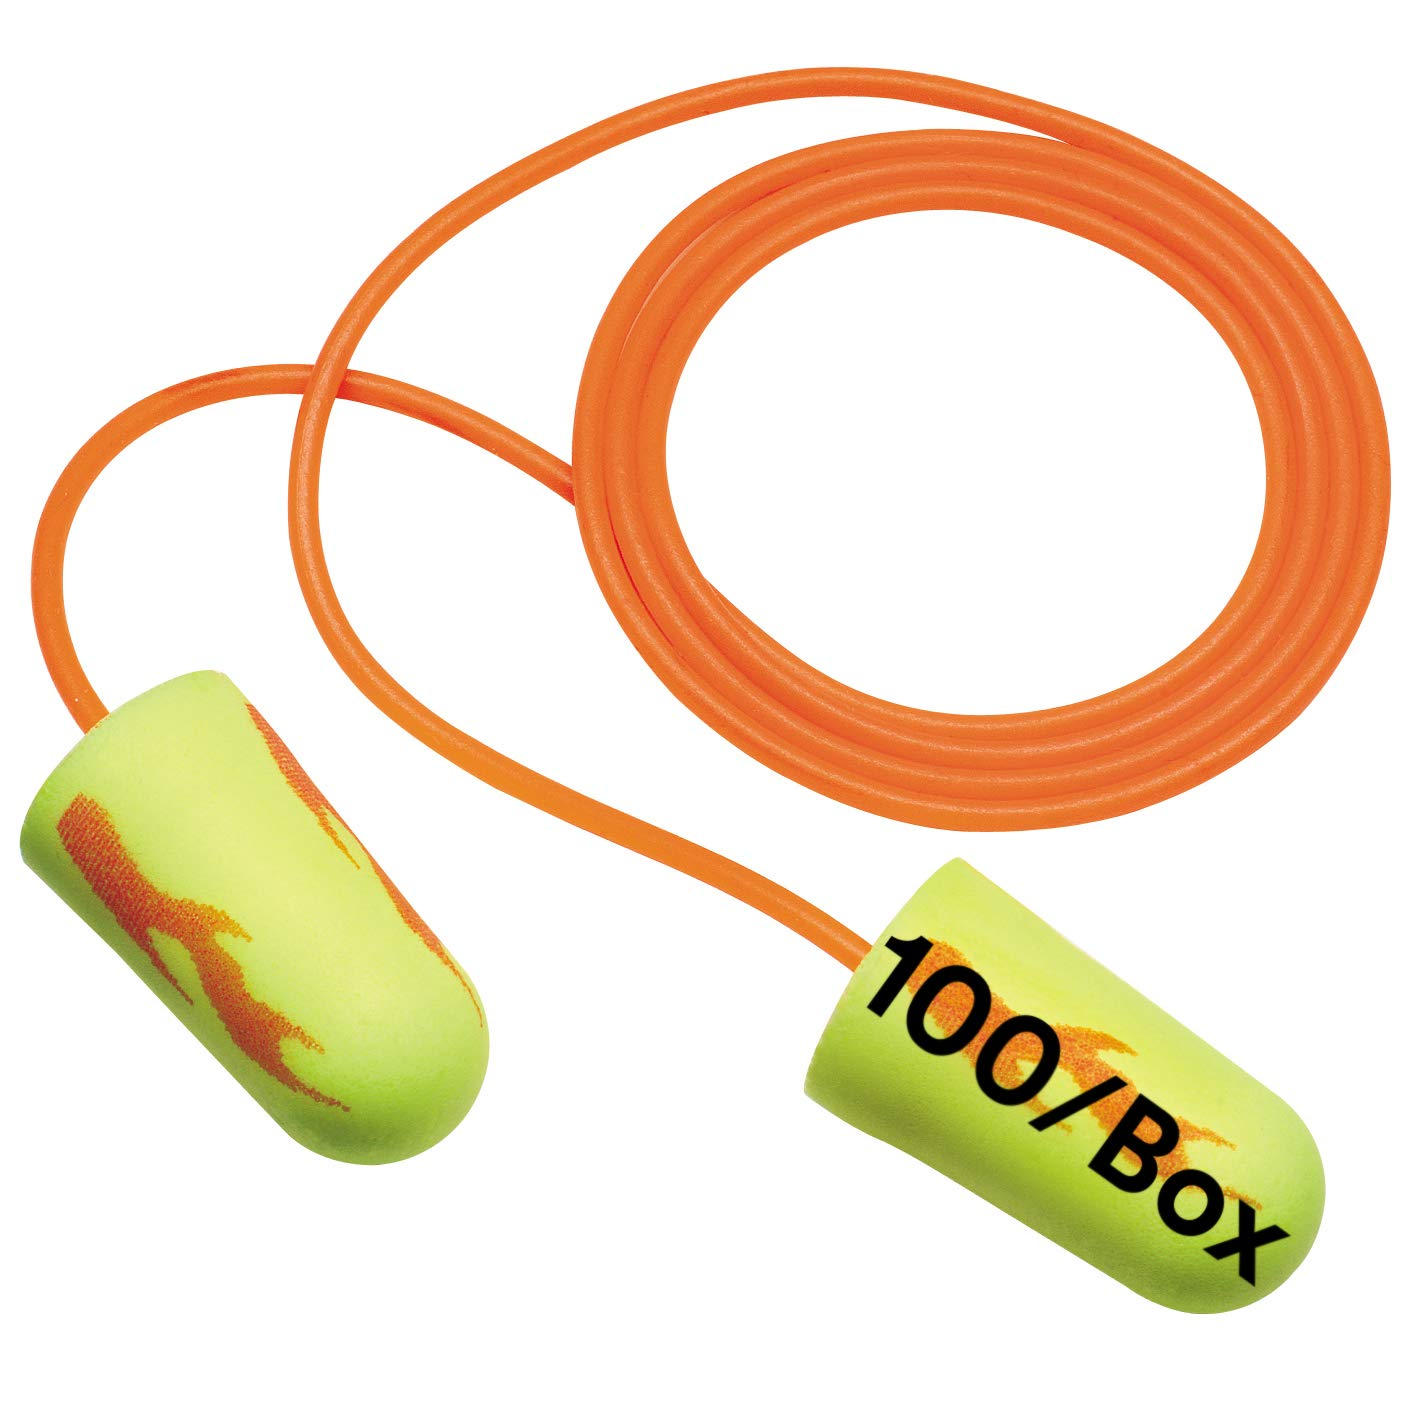 ear soft fx yellow uncorded ear plugs-variable 3m es-01-020